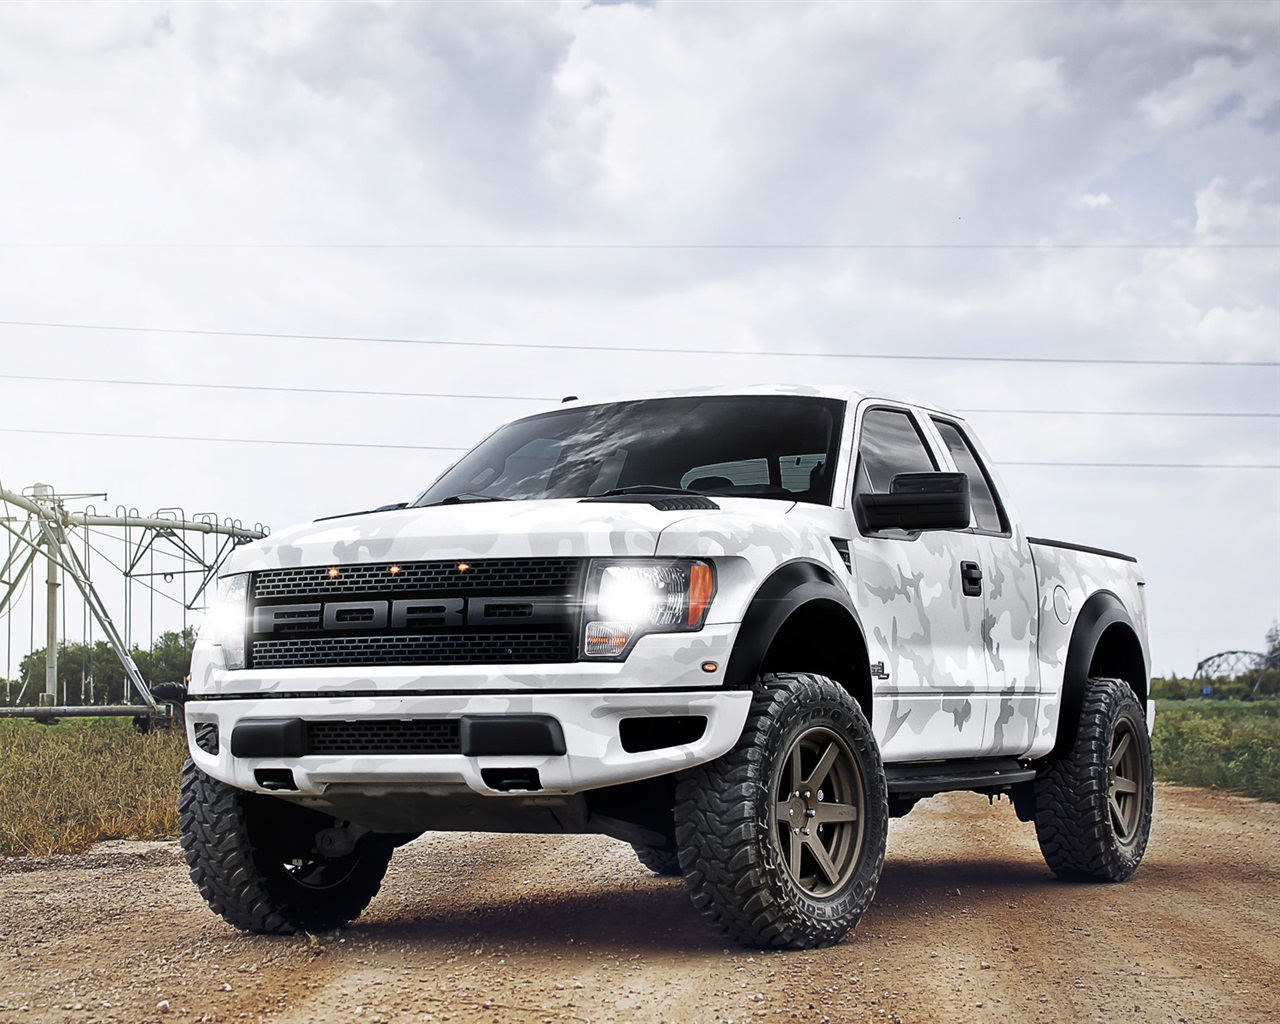 Ford Raptor white camouflage pickup Wallpaper